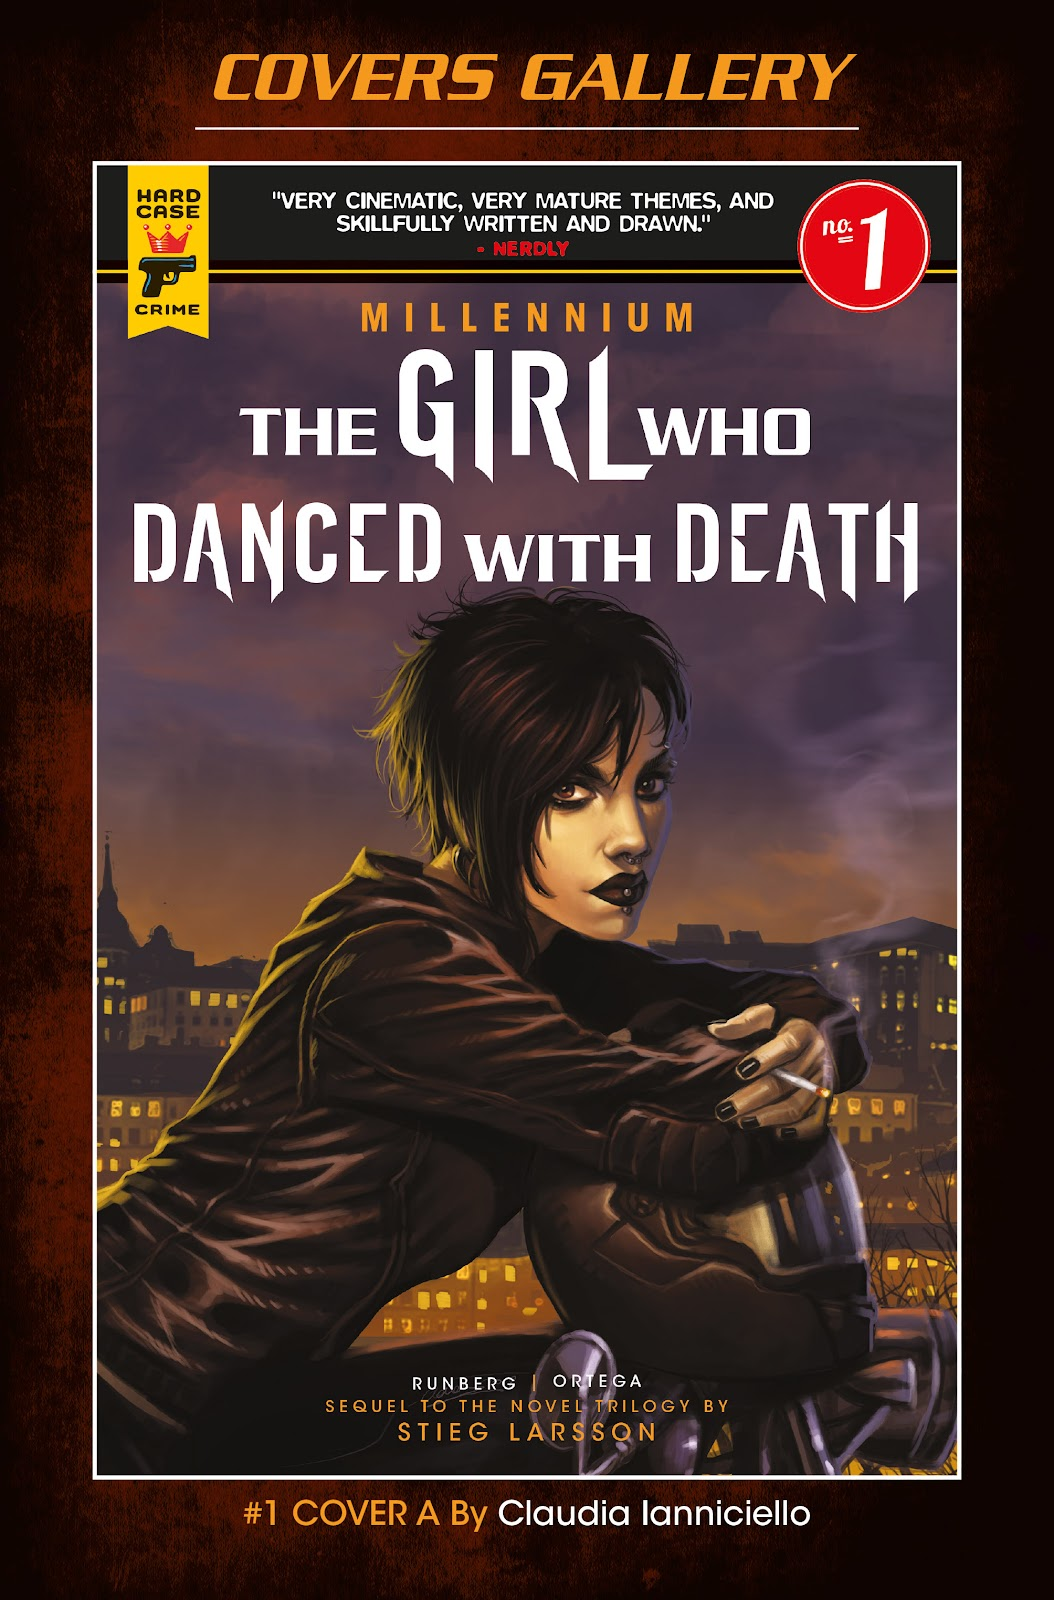 Read online Millennium: The Girl Who Danced With Death comic -  Issue #1 - 58